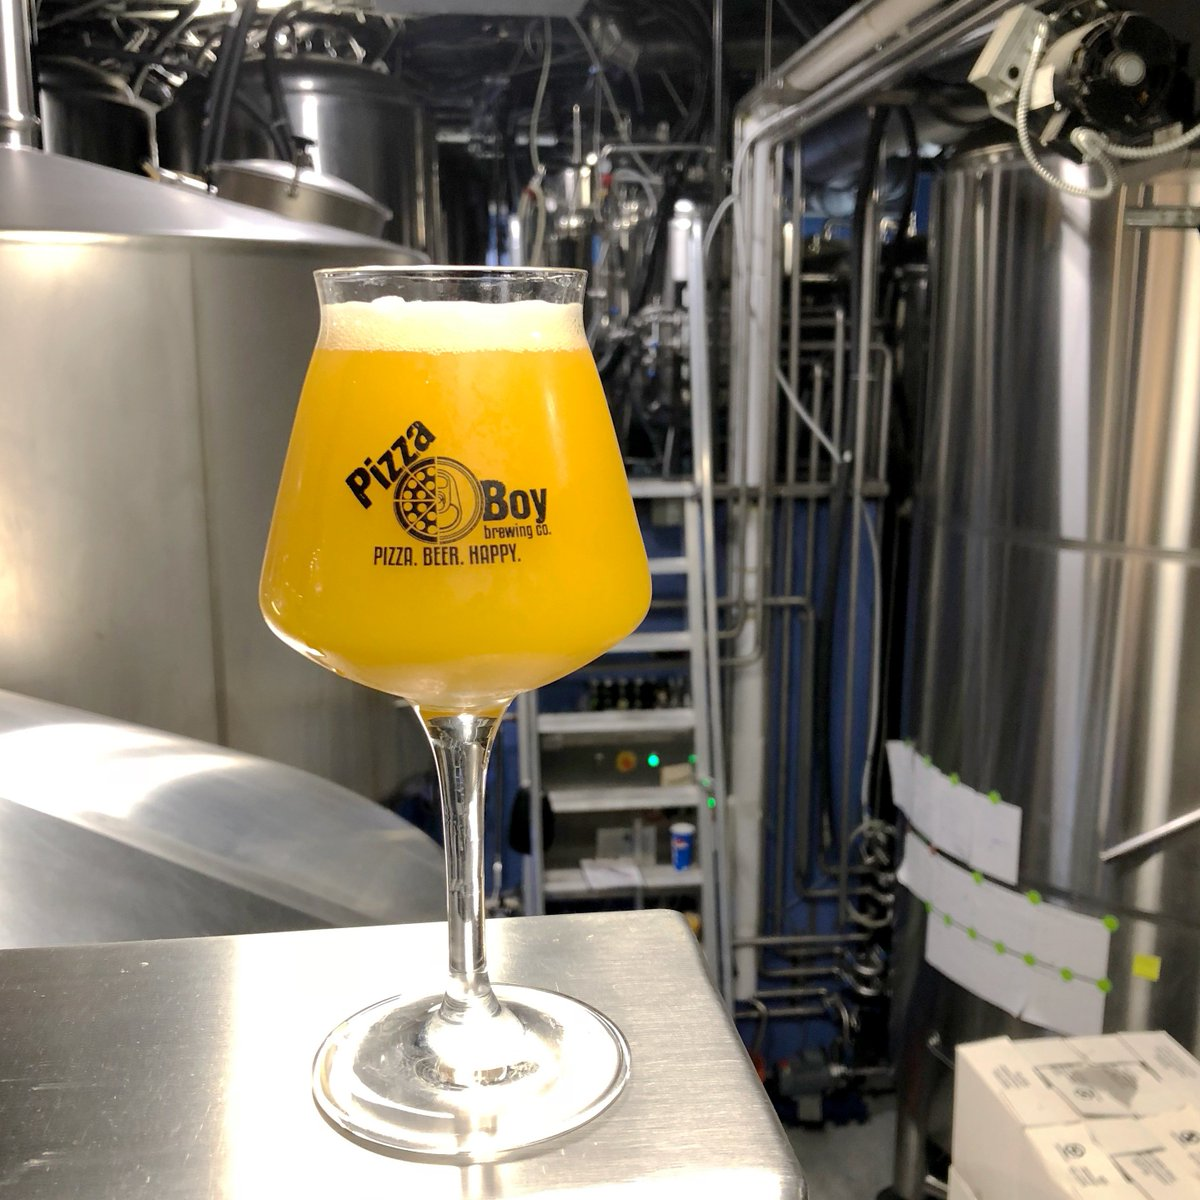 MANGO BOMB IS BACK! Not for the faint of heart, this triple IPA is brewed with around 15lb of Alphonso Mango puree per barrel and dry-hopped to the gills with Citra and Simcoe. ON TAP NOW, crowlers/growlers to go & limited keg distro. #pizzabeerhappy #mangobomb 🥭💣🥭💣🥭💣